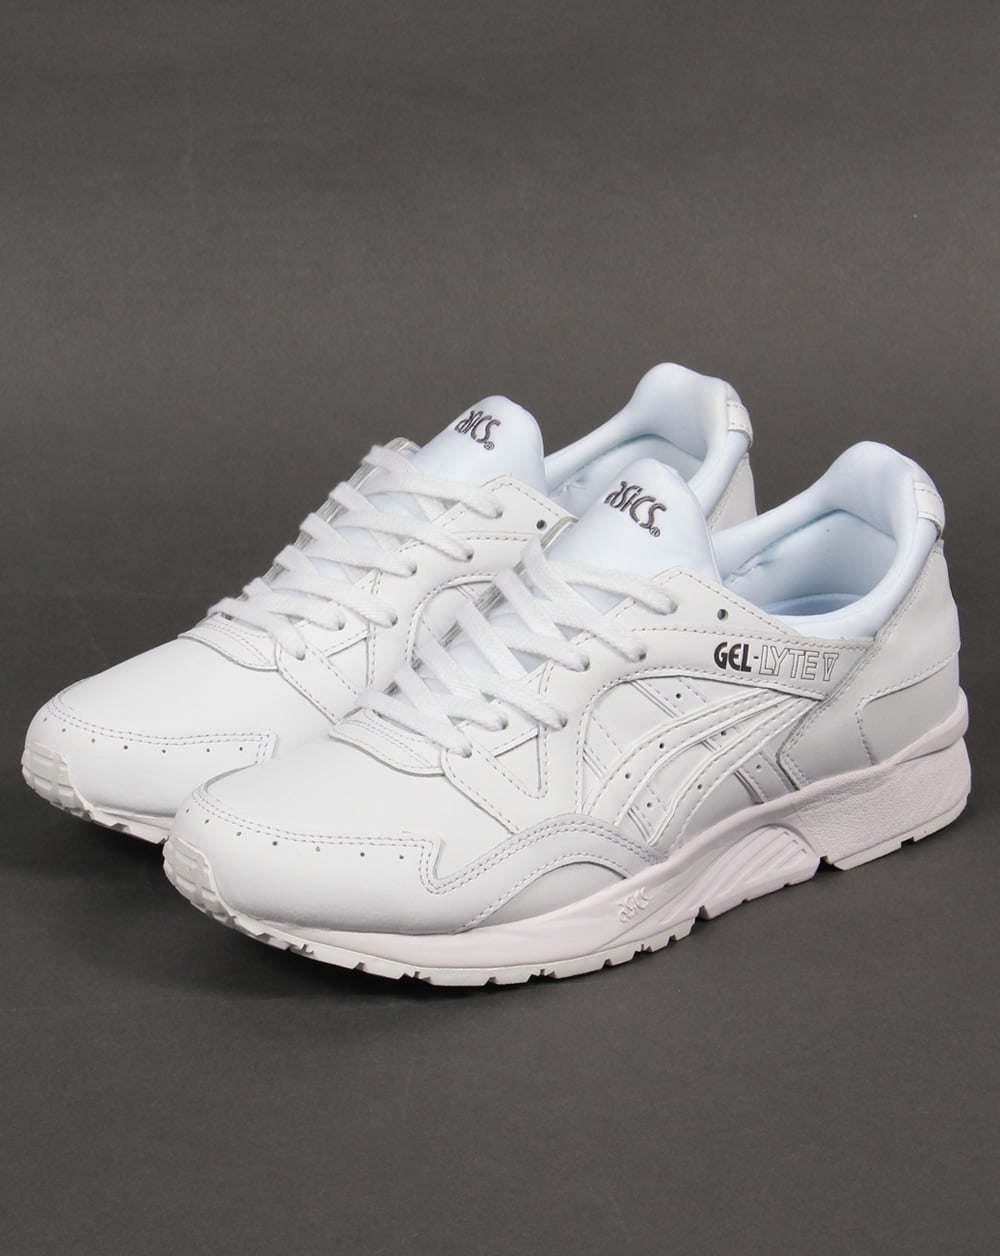 wholesale dealer 87e07 0c387 Asics Gel Lyte V Leather Trainers White